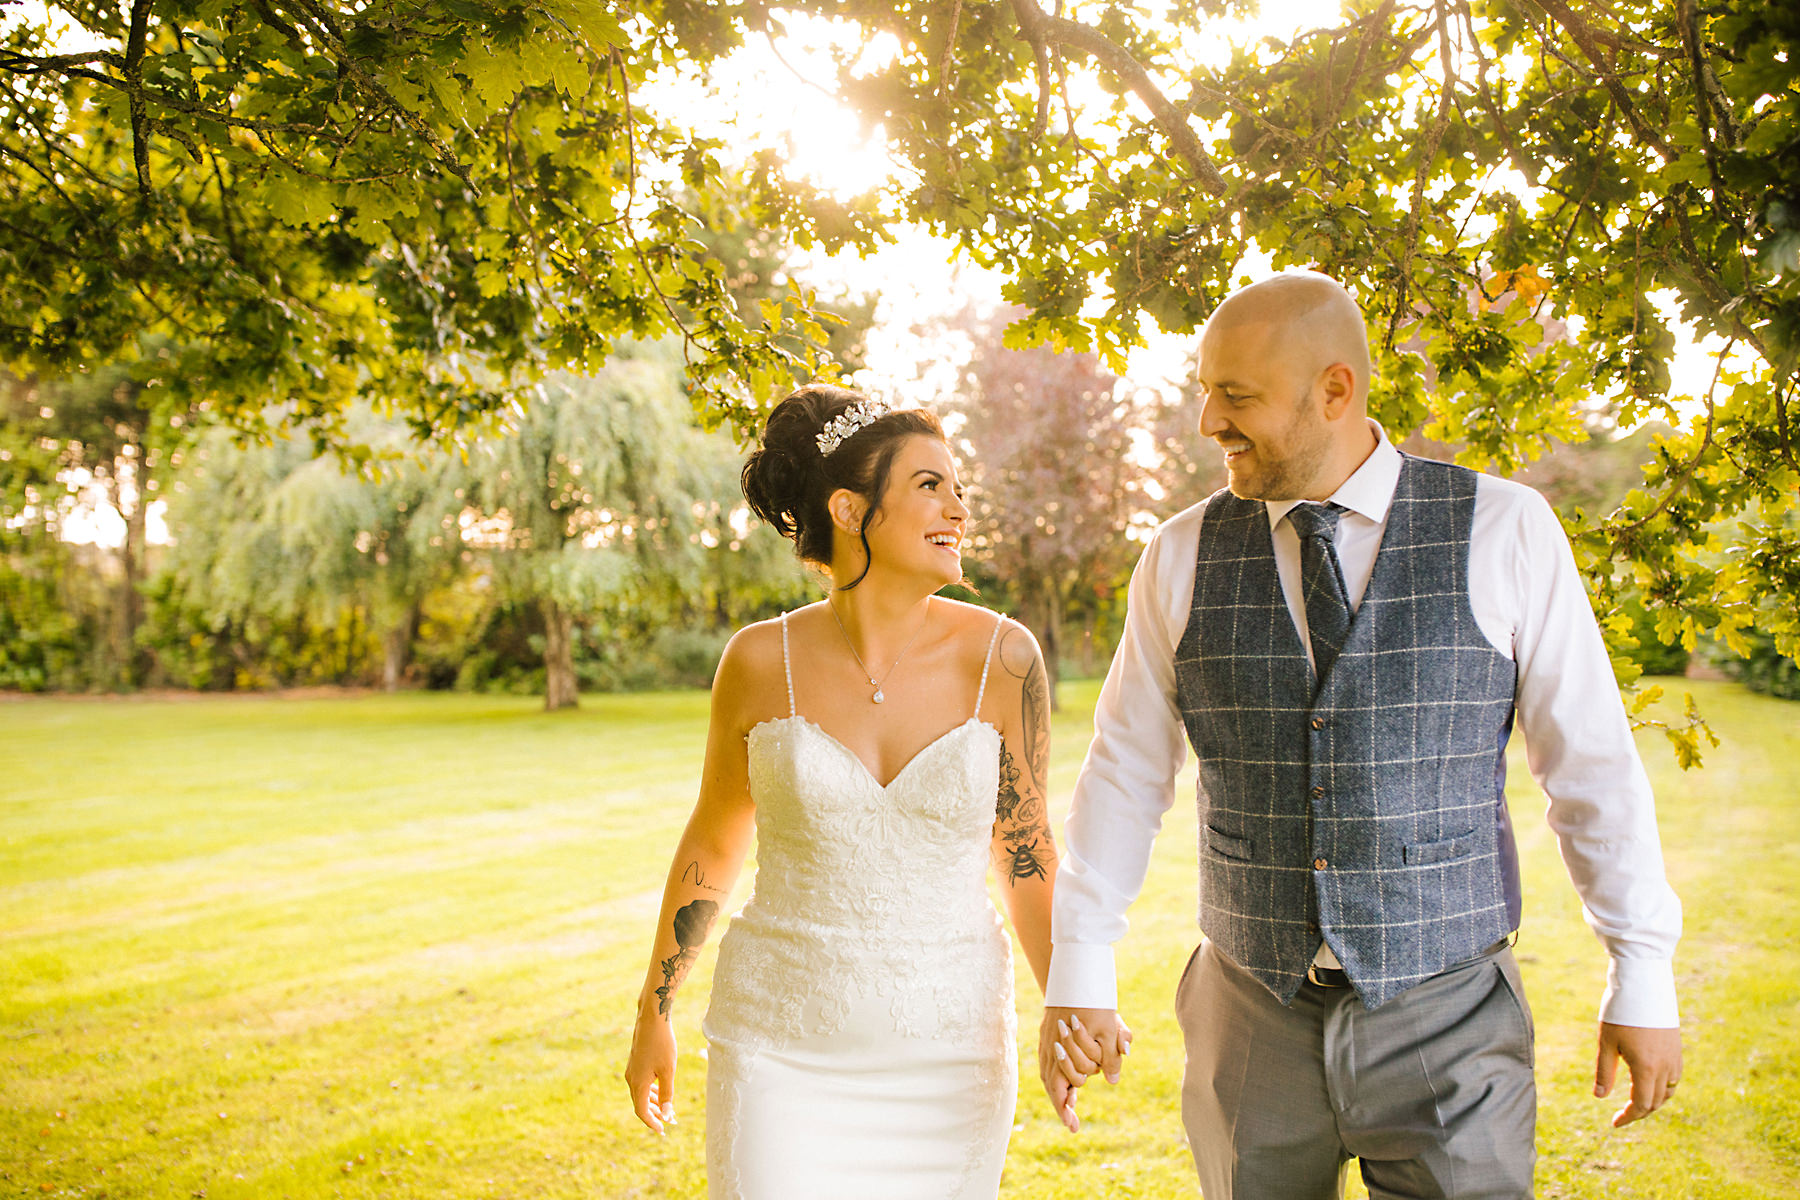 chimney house hotel bride and groom photos